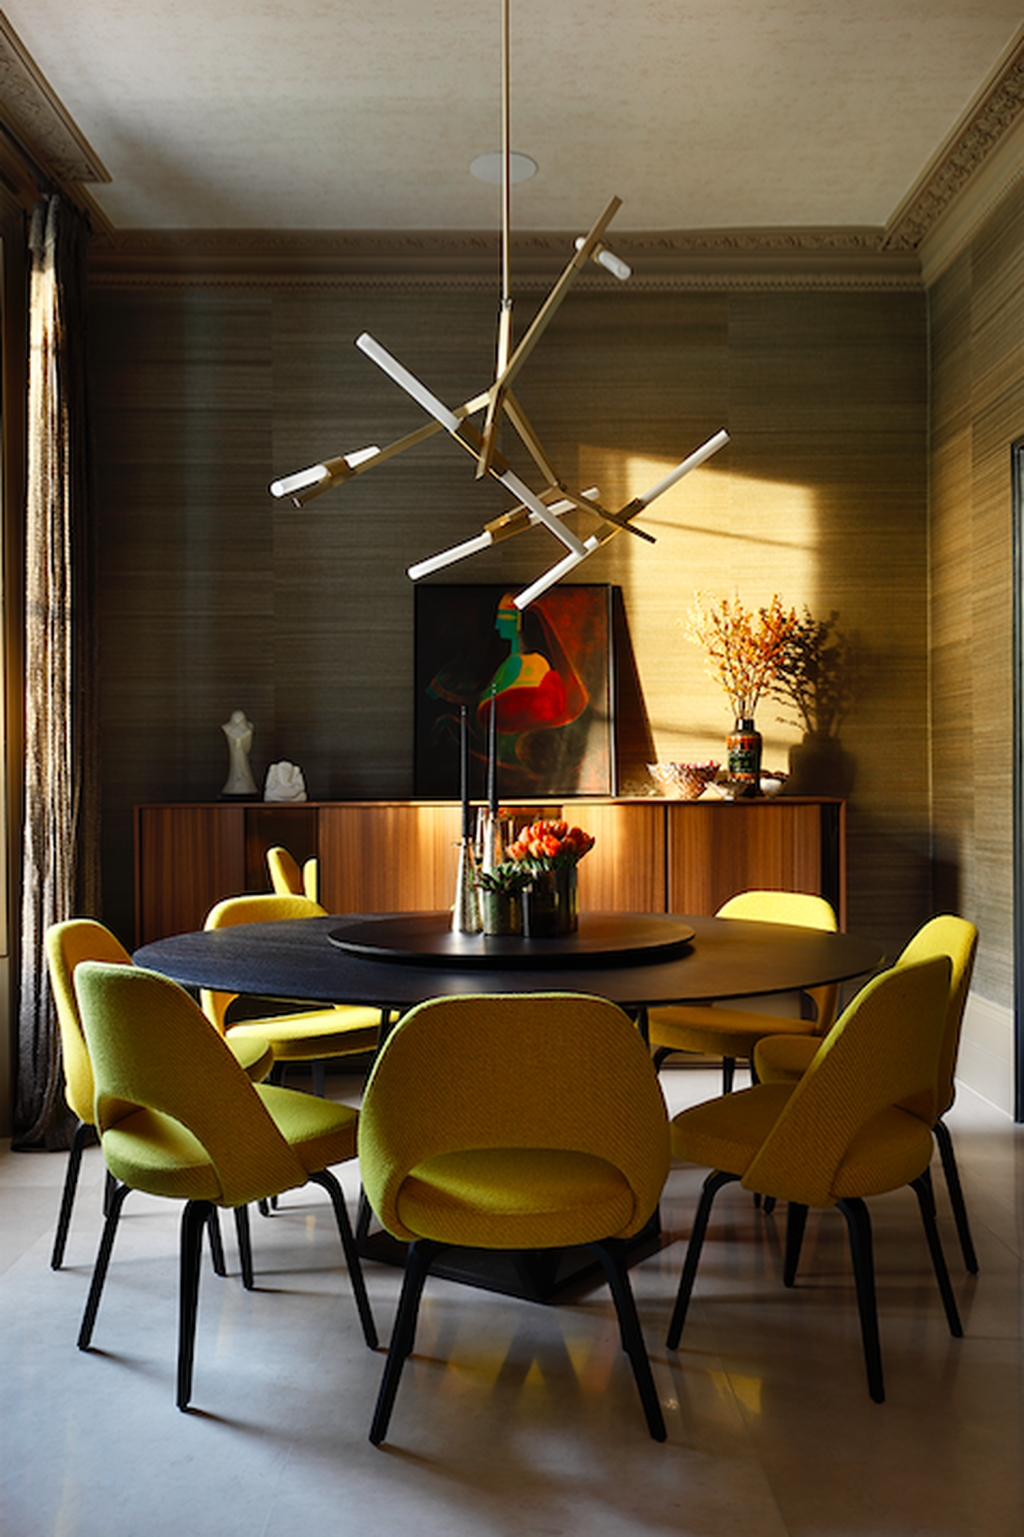 Unusual Lighting Design Ideas For Your Home That Looks Modern01